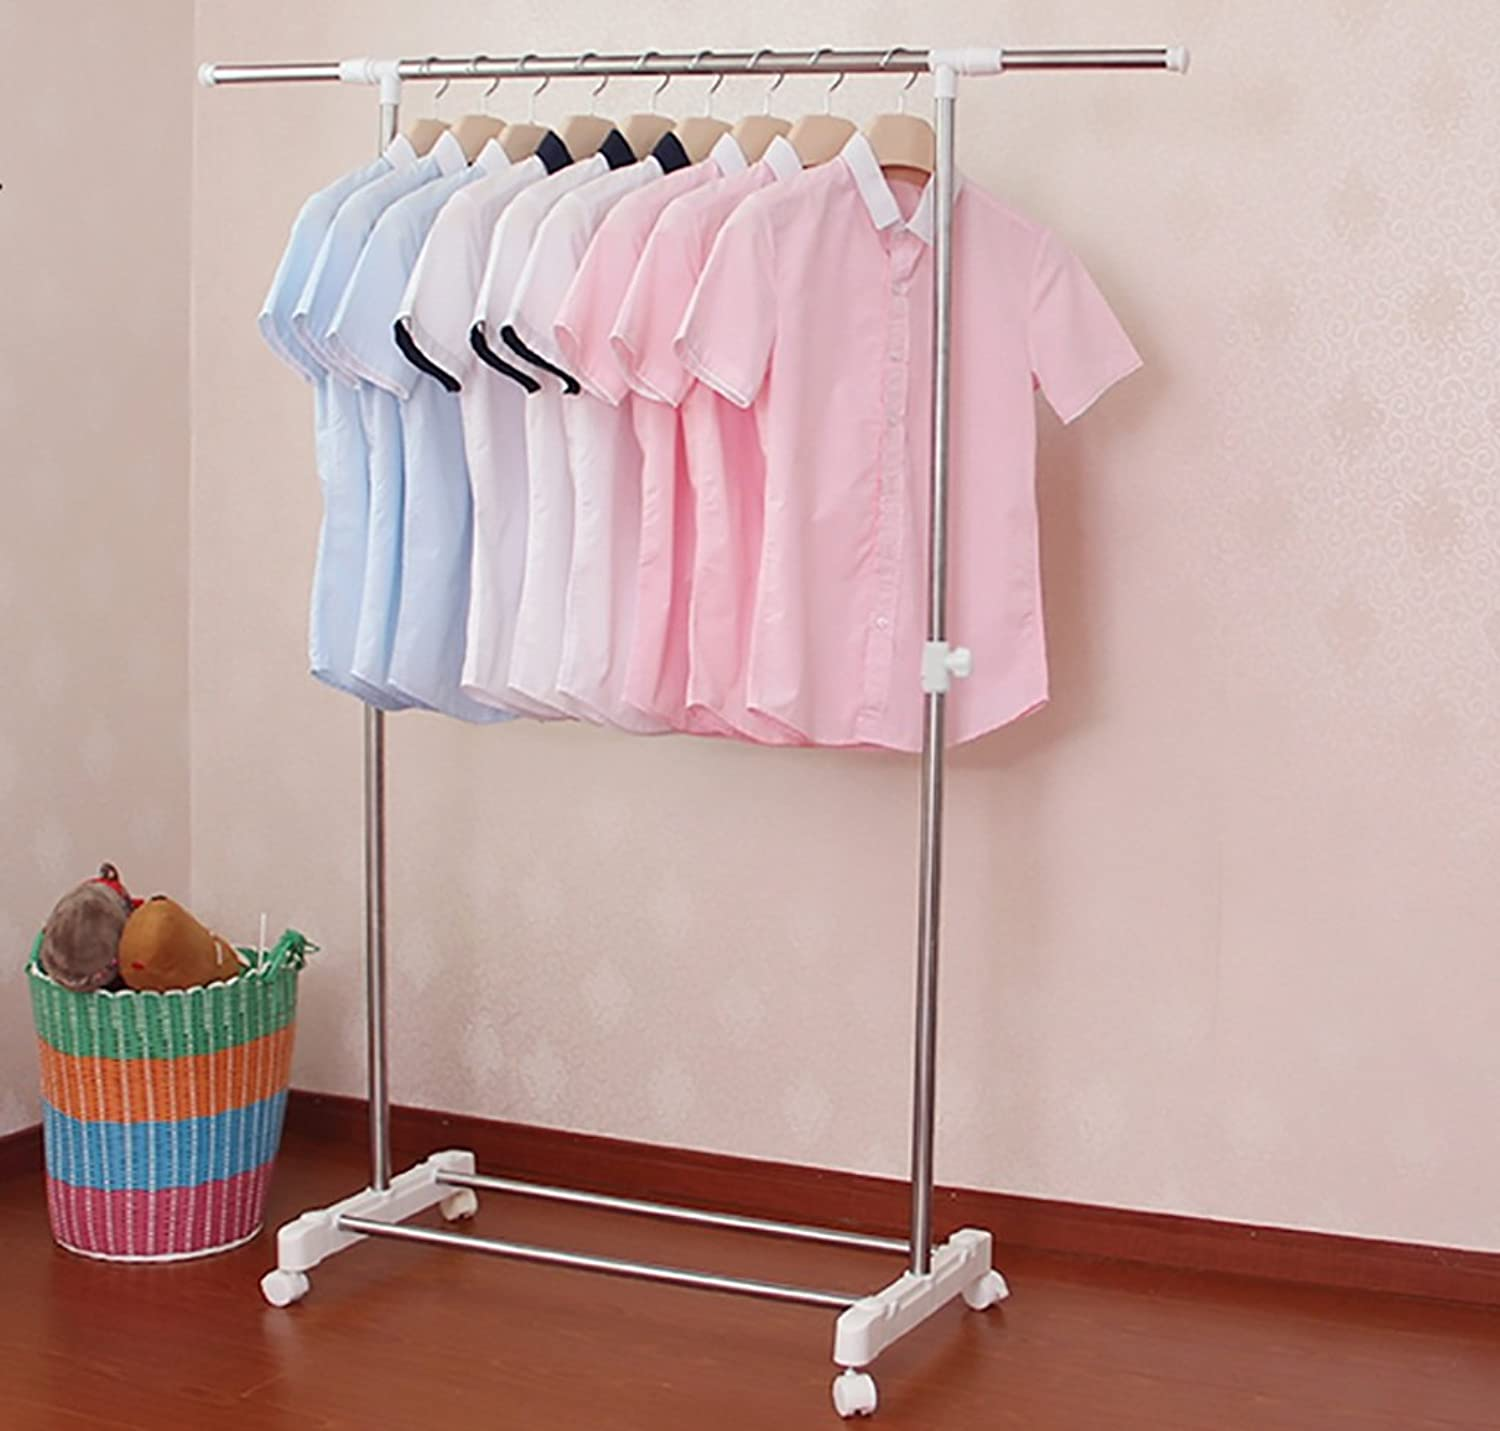 Coat Rack Coat Rack Floor Drying Racks Single Pole Retractable Stainless Steel Drying Rack Drying Rack Balcony Drying Rack (color   B)